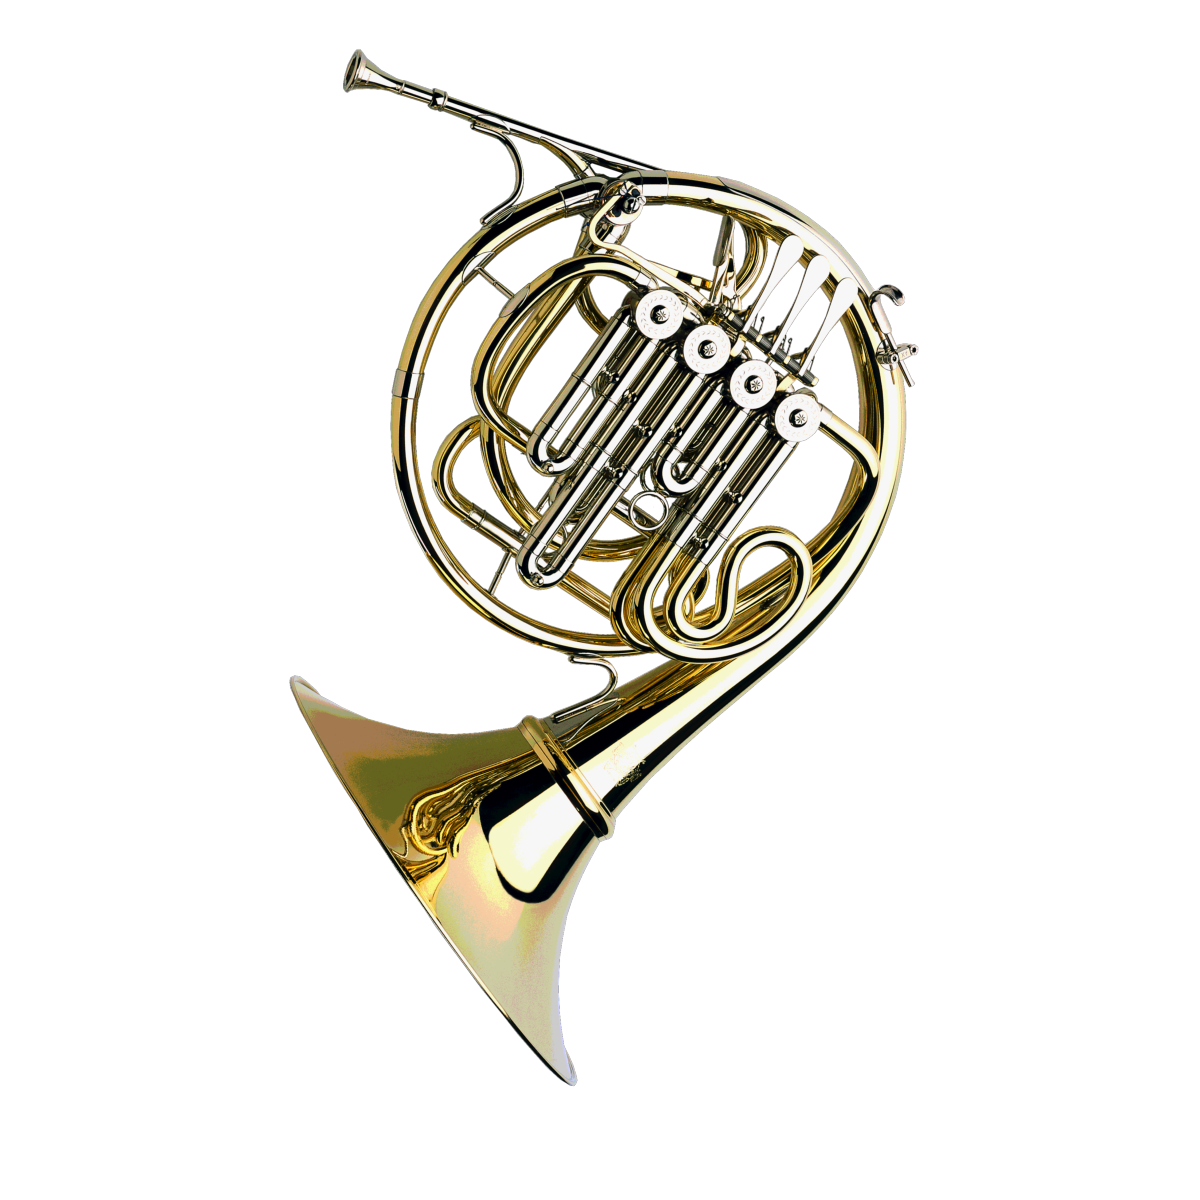 Paxman - Professional Model 45 Bb/F-Alto Double Descant French Horn-French Horn-Paxman-Music Elements